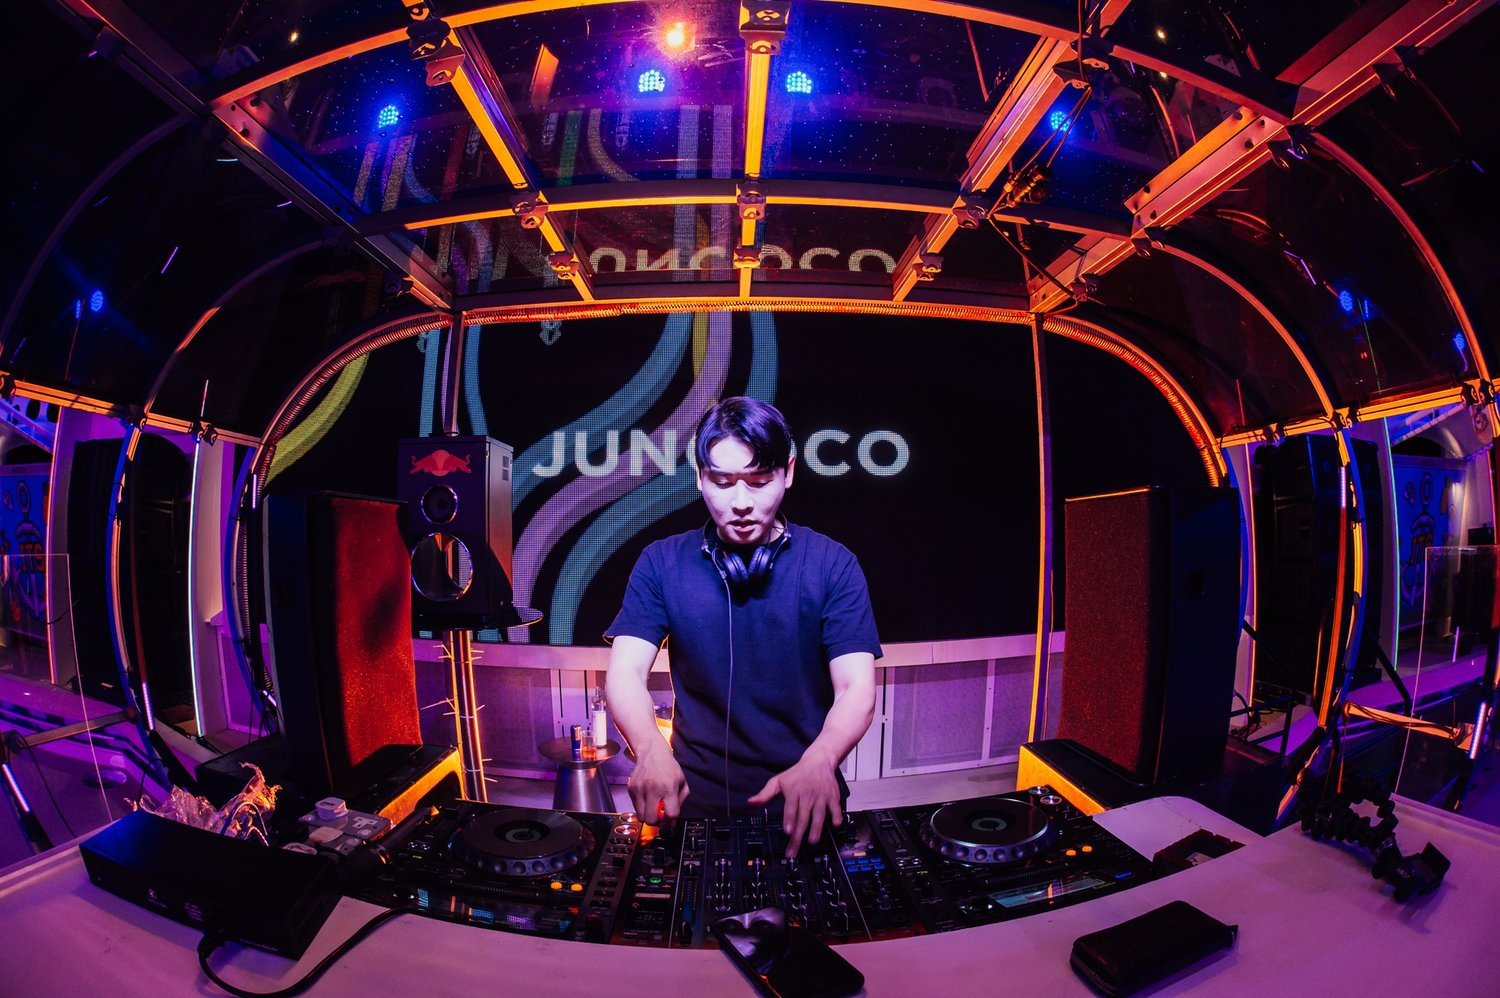 IT'S THE SHIP is also a platform for regional talent to shine, This 2018, Livescape held their second Deck Selecta competition where three lucky winners, Yusef Kifah from Malaysia, and Juncoco and Enoch An from South Korea got to perform alongside some of the best DJs on this year's party cruise